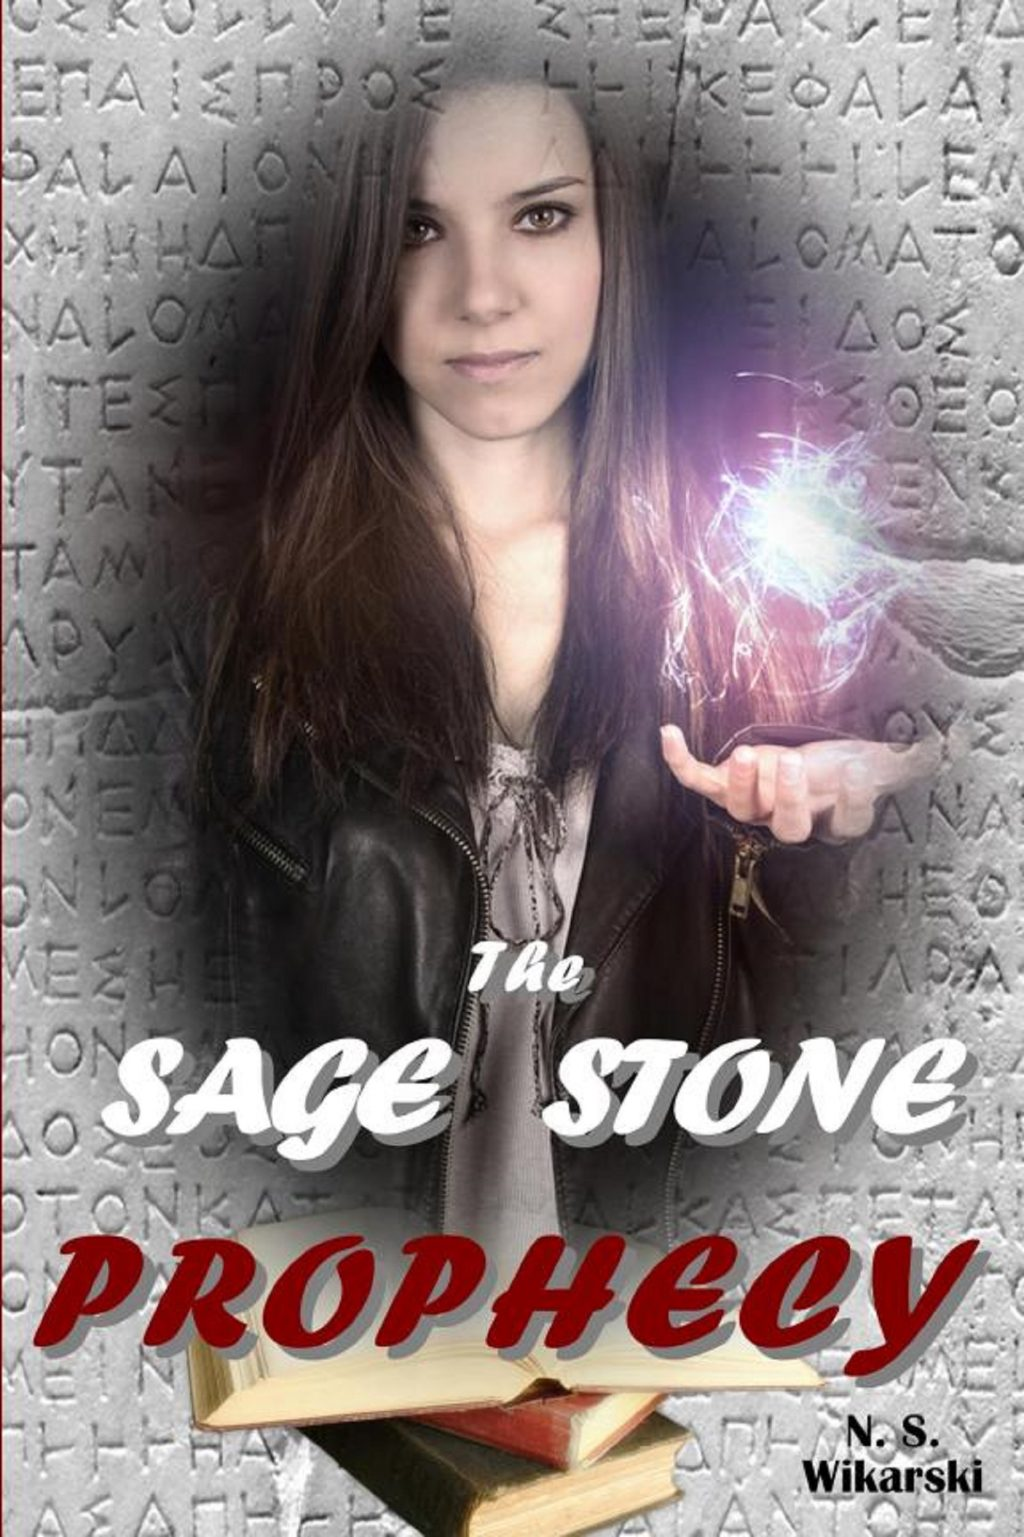 The Sage Stone Prophecy by N. S. Wikarski